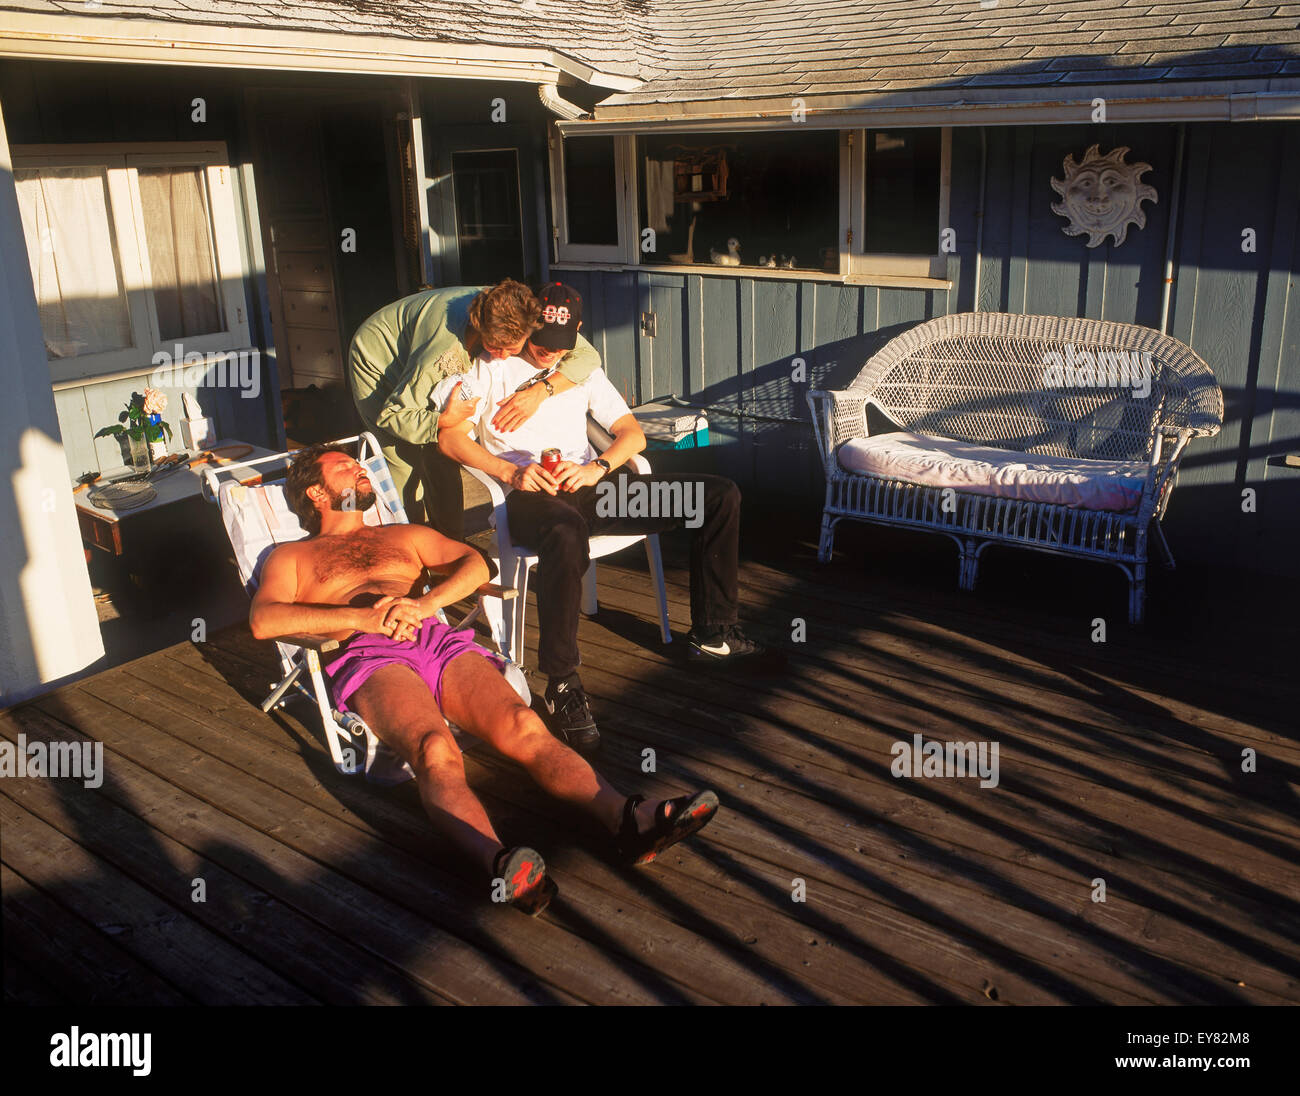 Coastal homes and sun bathers at Woods Cove in Laguna Beach on a warm winter day in  Southern California sunbathing - Stock Image